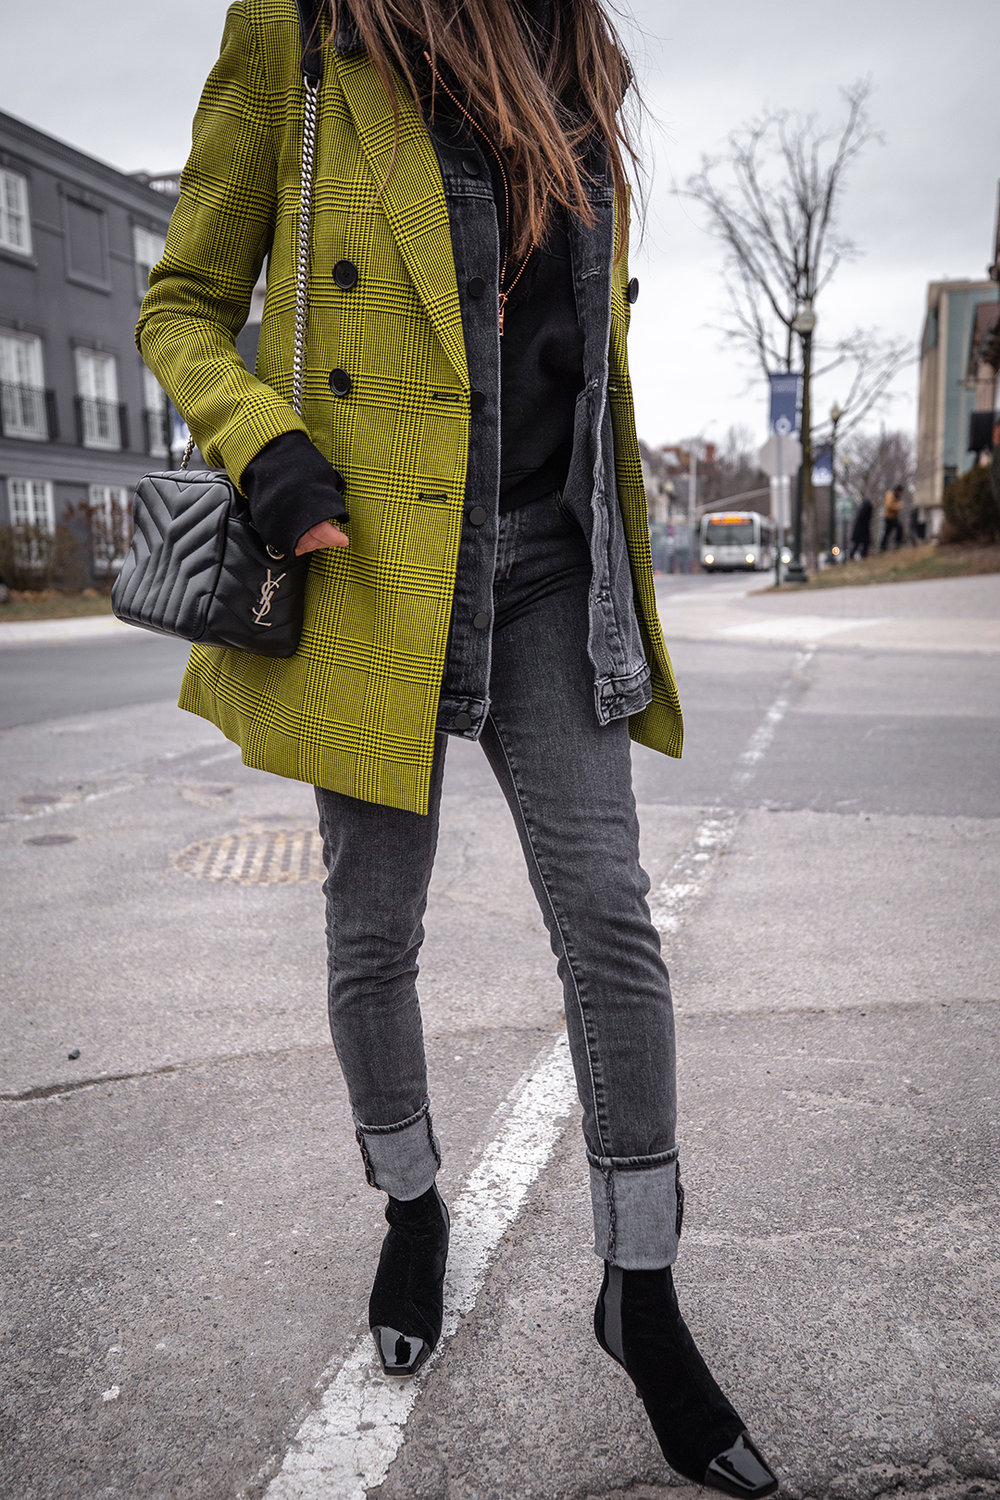 Nathalie Martin, Robert Rodriguez yellow plaid houndstooth blazer, Balenciaga logo beanie hat, Loewe velvet patent leather boots, grey jeans, Alexander Wang denim vest, Frank & Eileen hoodie, Saint Laurent LouLou bag, streetstyle woahstyle.com_6075.jpg